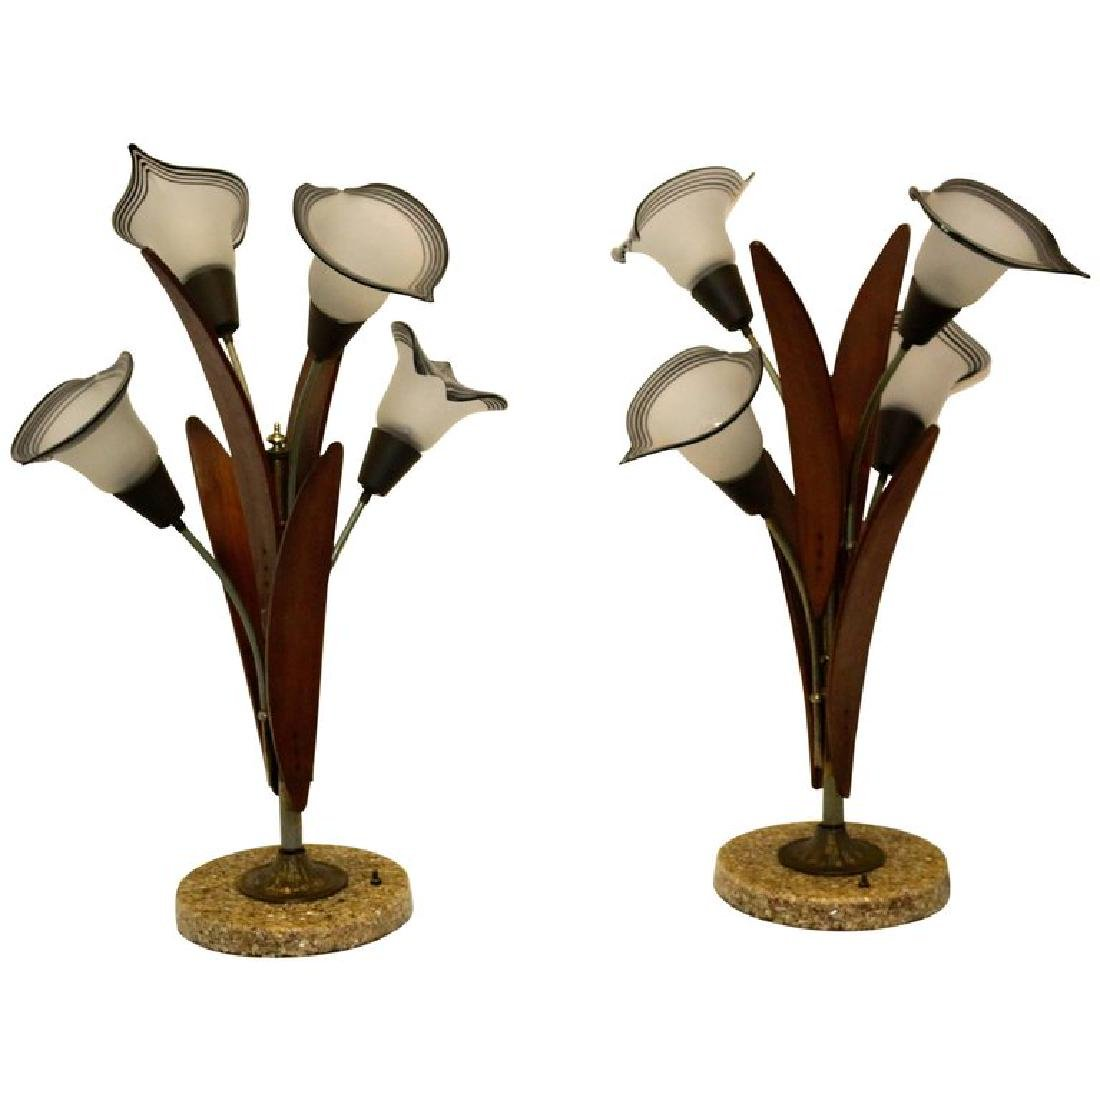 Pair of Mid-Century Teak Wood Table Lamps with Glass